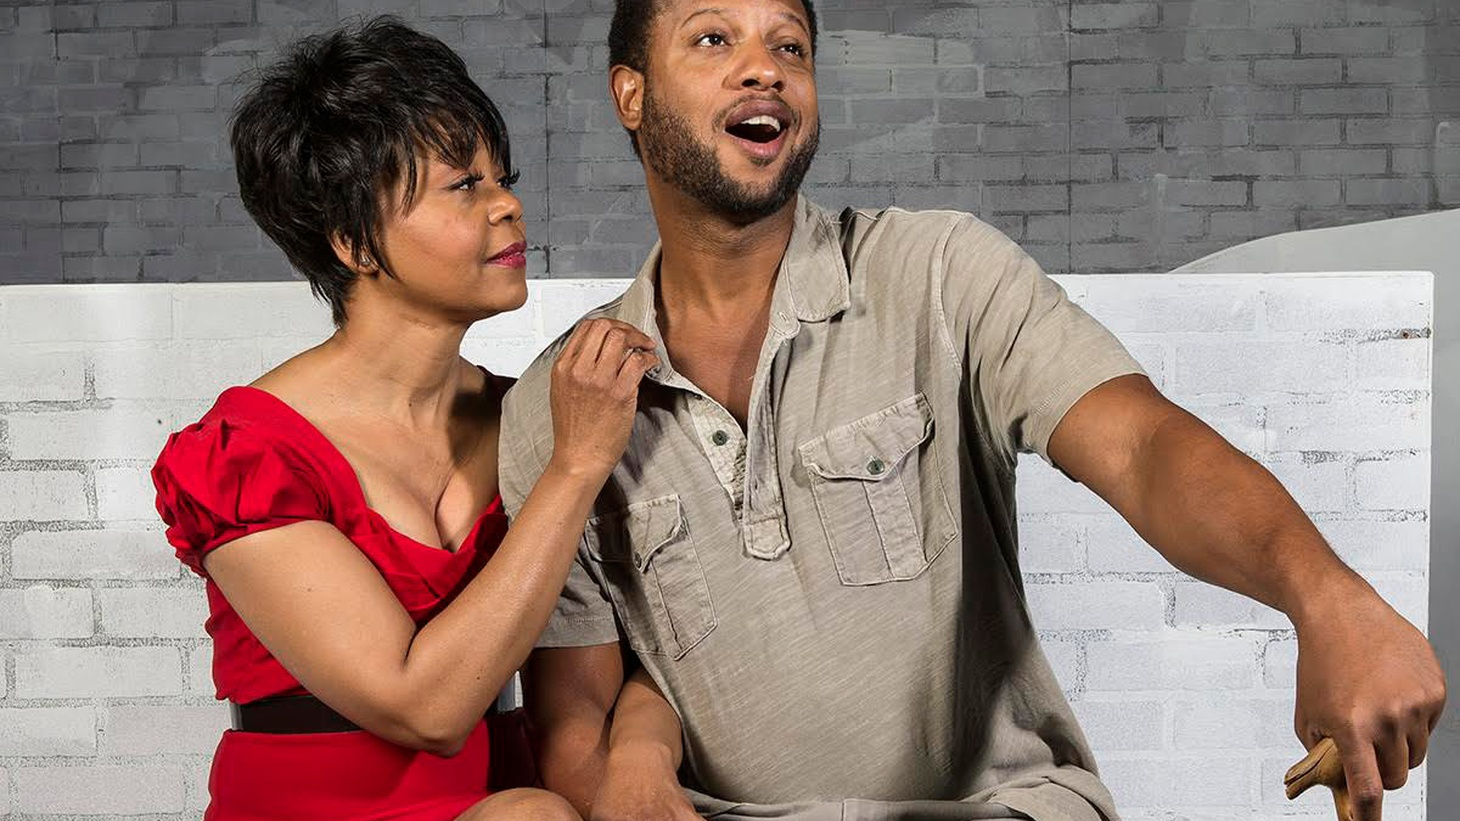 A jazz interpretation of the American opera Porgy and Bess debuts this weekend at the New Vic Theater in Santa Barbara. KCRW's Larry Perel spoke with the starring actors about the history behind the production and why the story is just as relevant today.